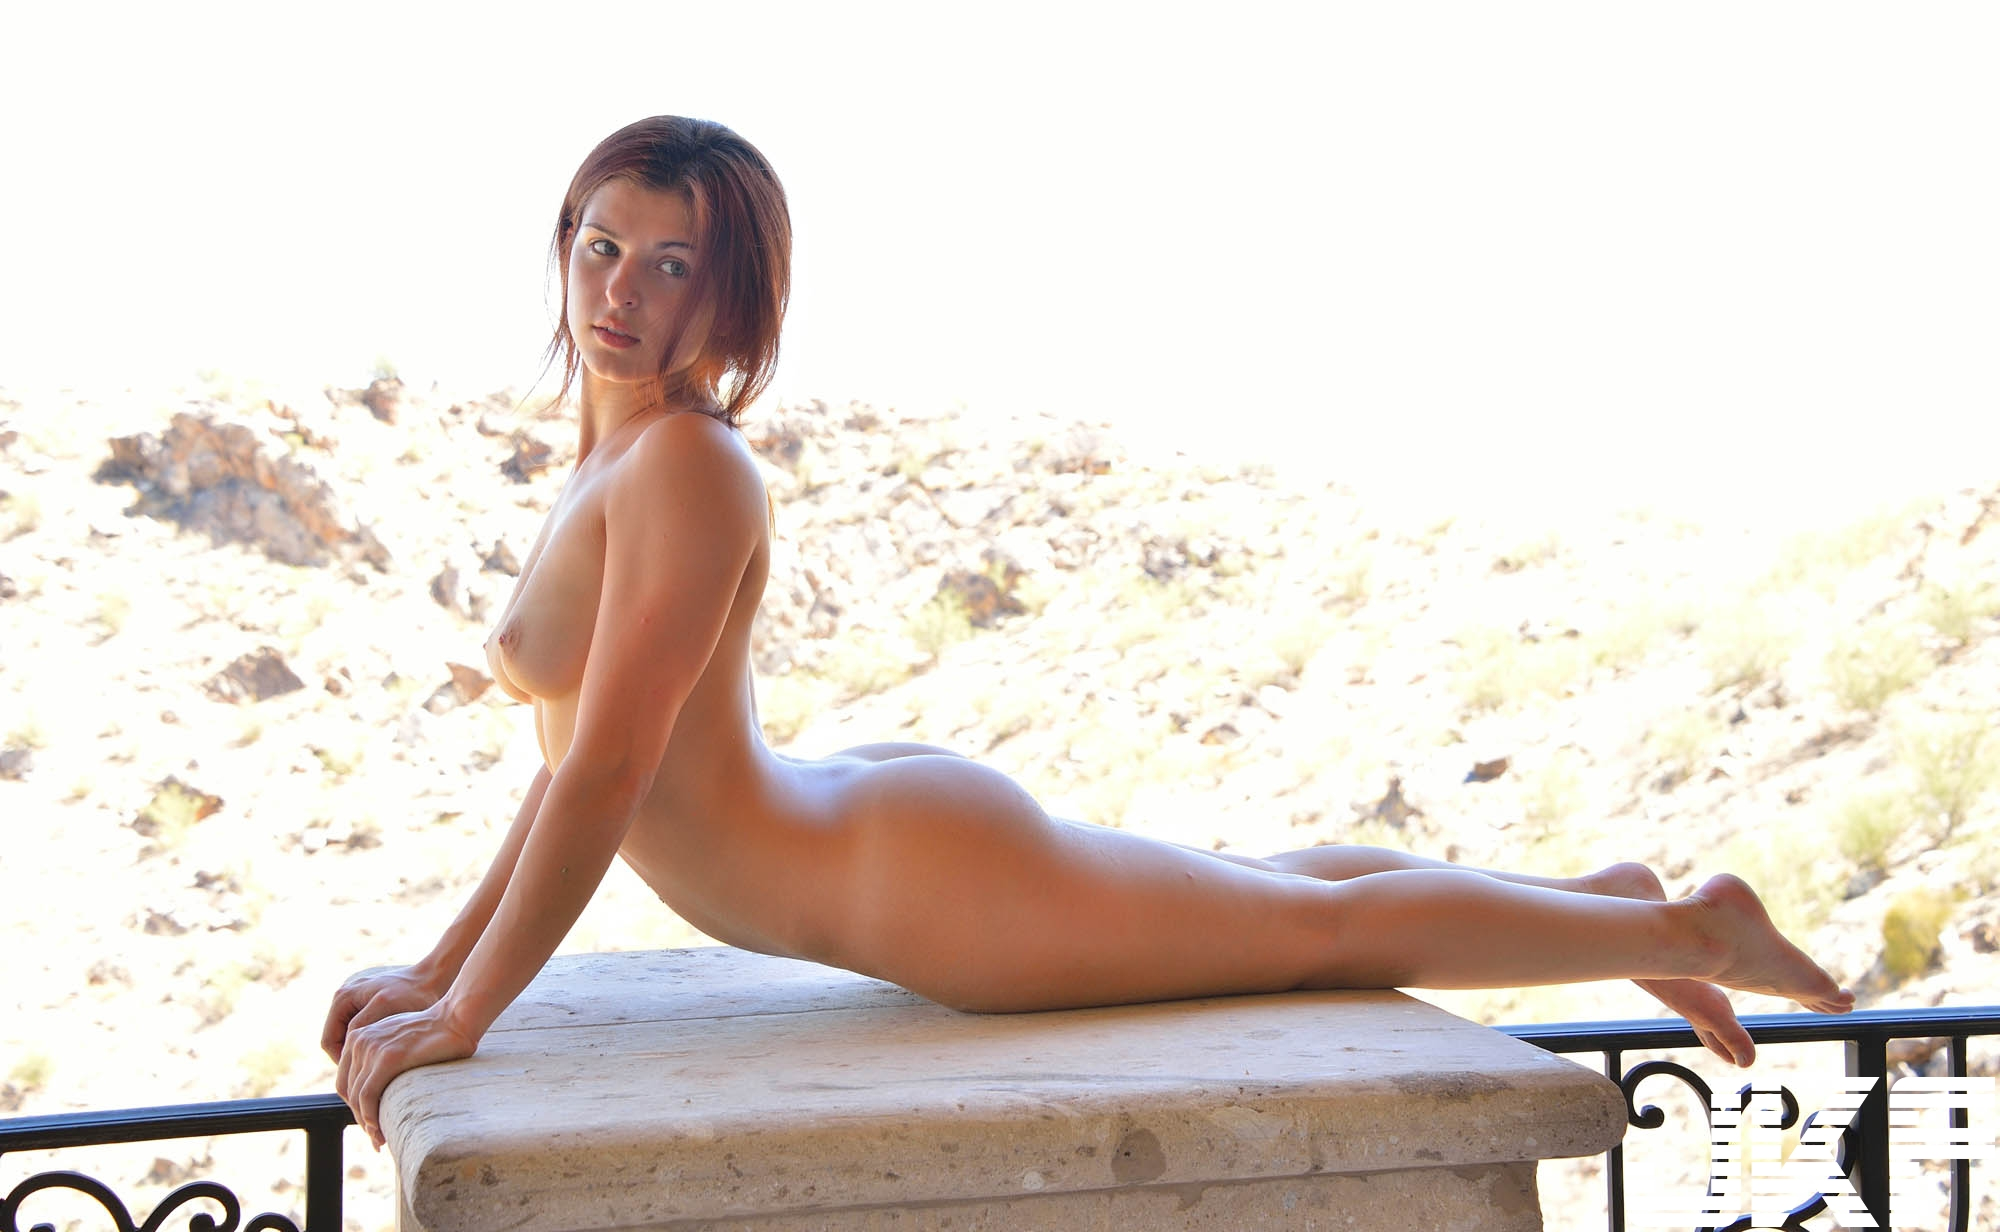 Shaved-Curvy-Brunette-Babe-Leah-Gotti-with-Beautiful-Legs-from-FTV-13.jpg